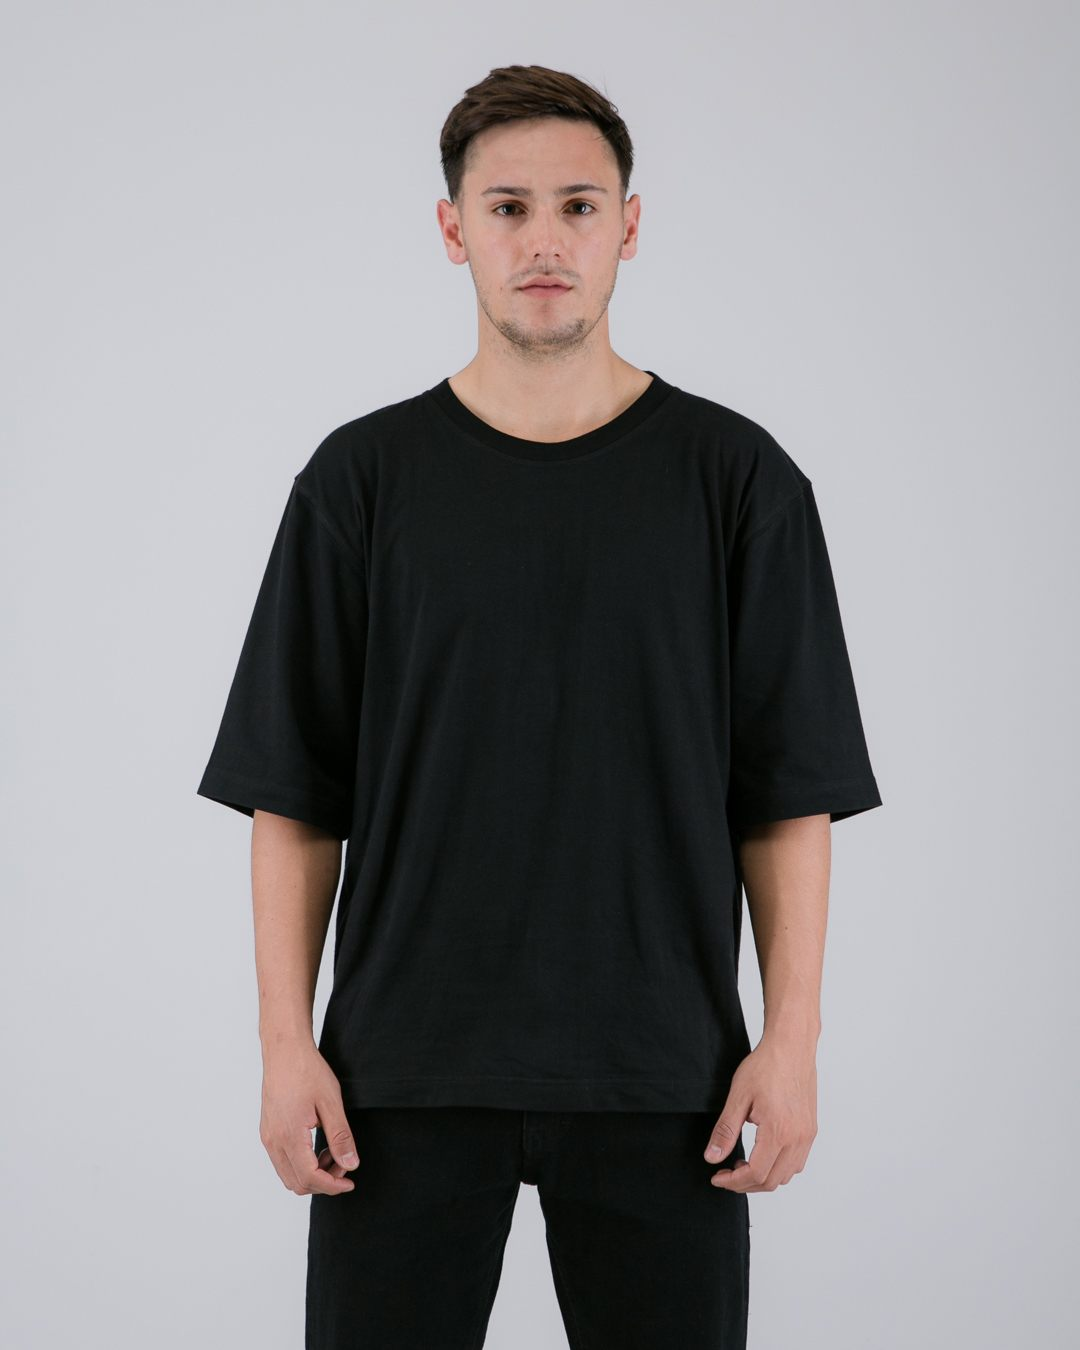 Bebow Tee Black